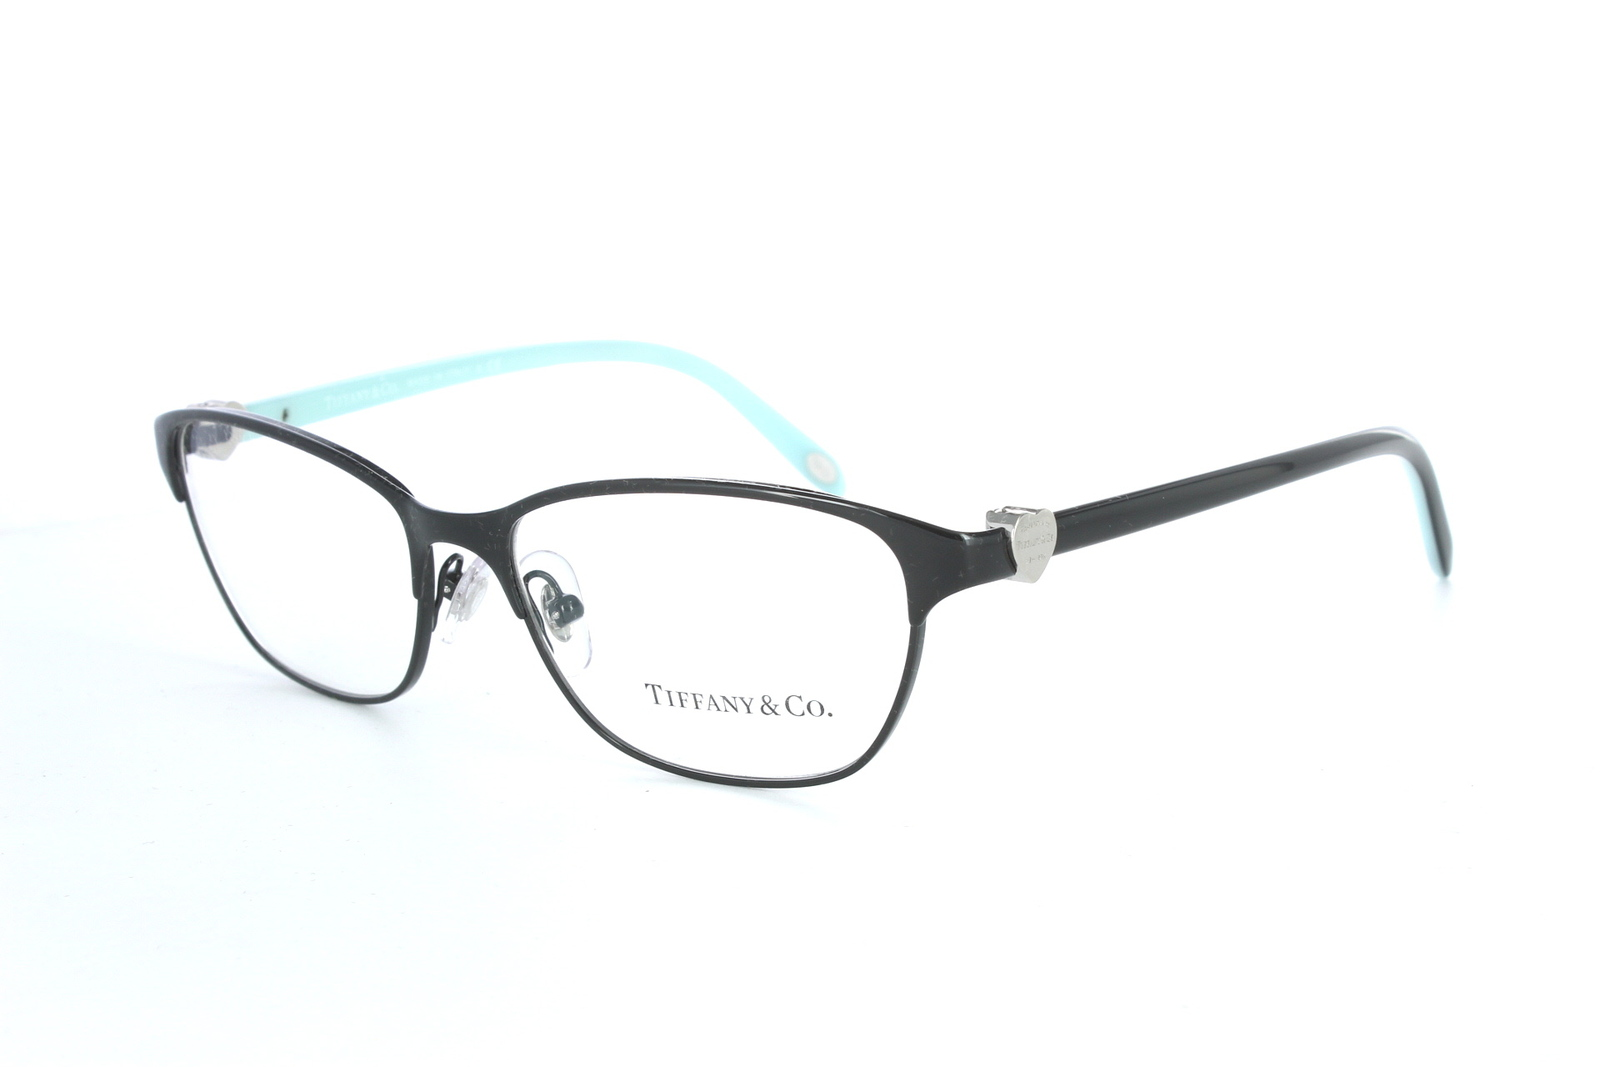 94e064763da Tiffany And Co Eyeglasses